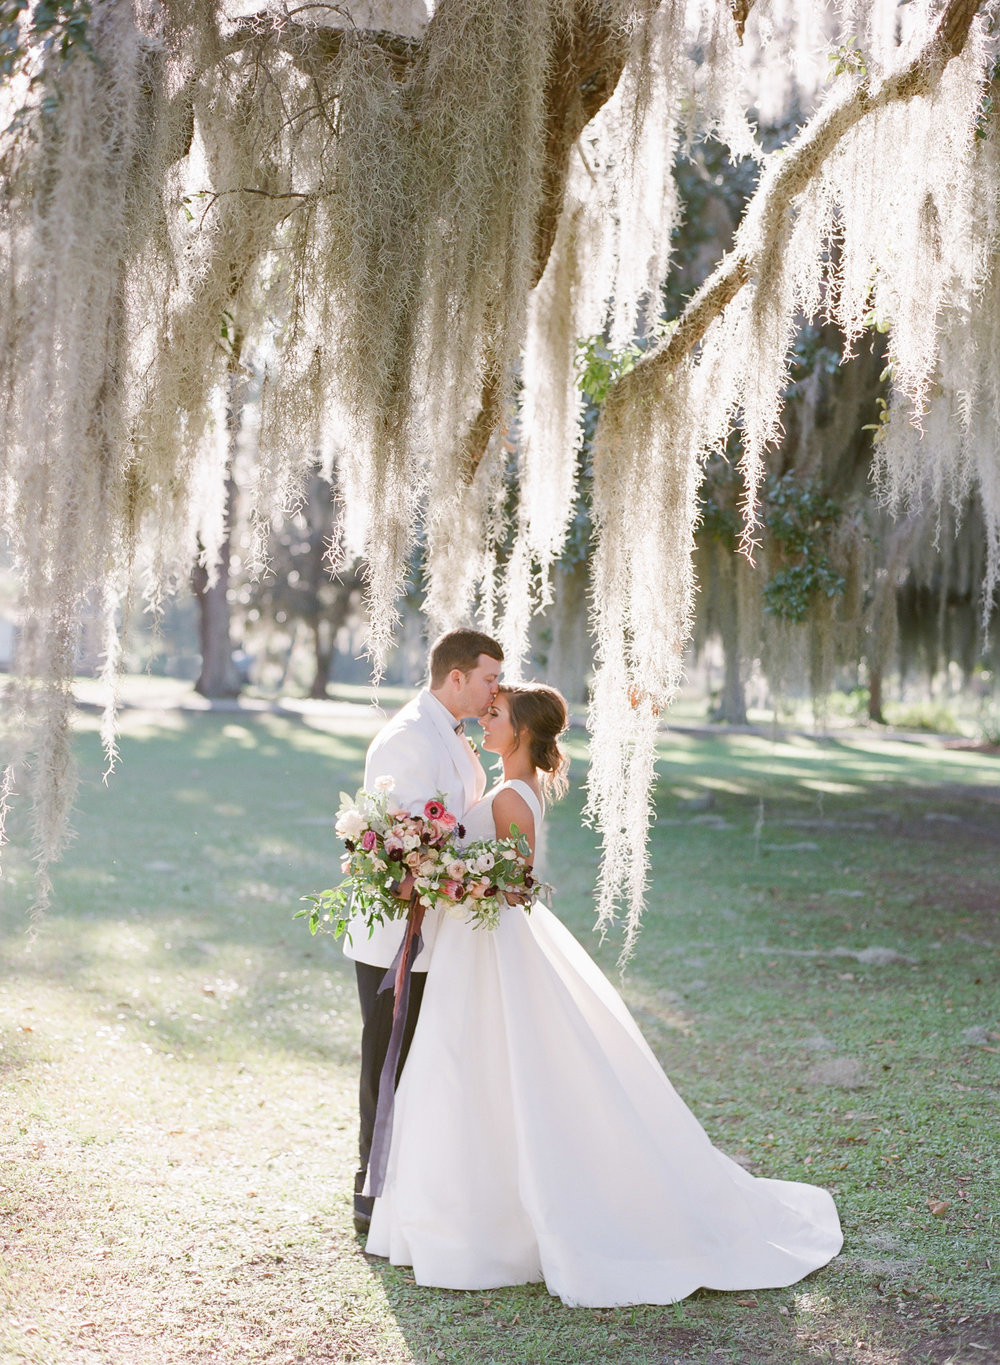 Charleston-Wedding-Photographer-47.jpg